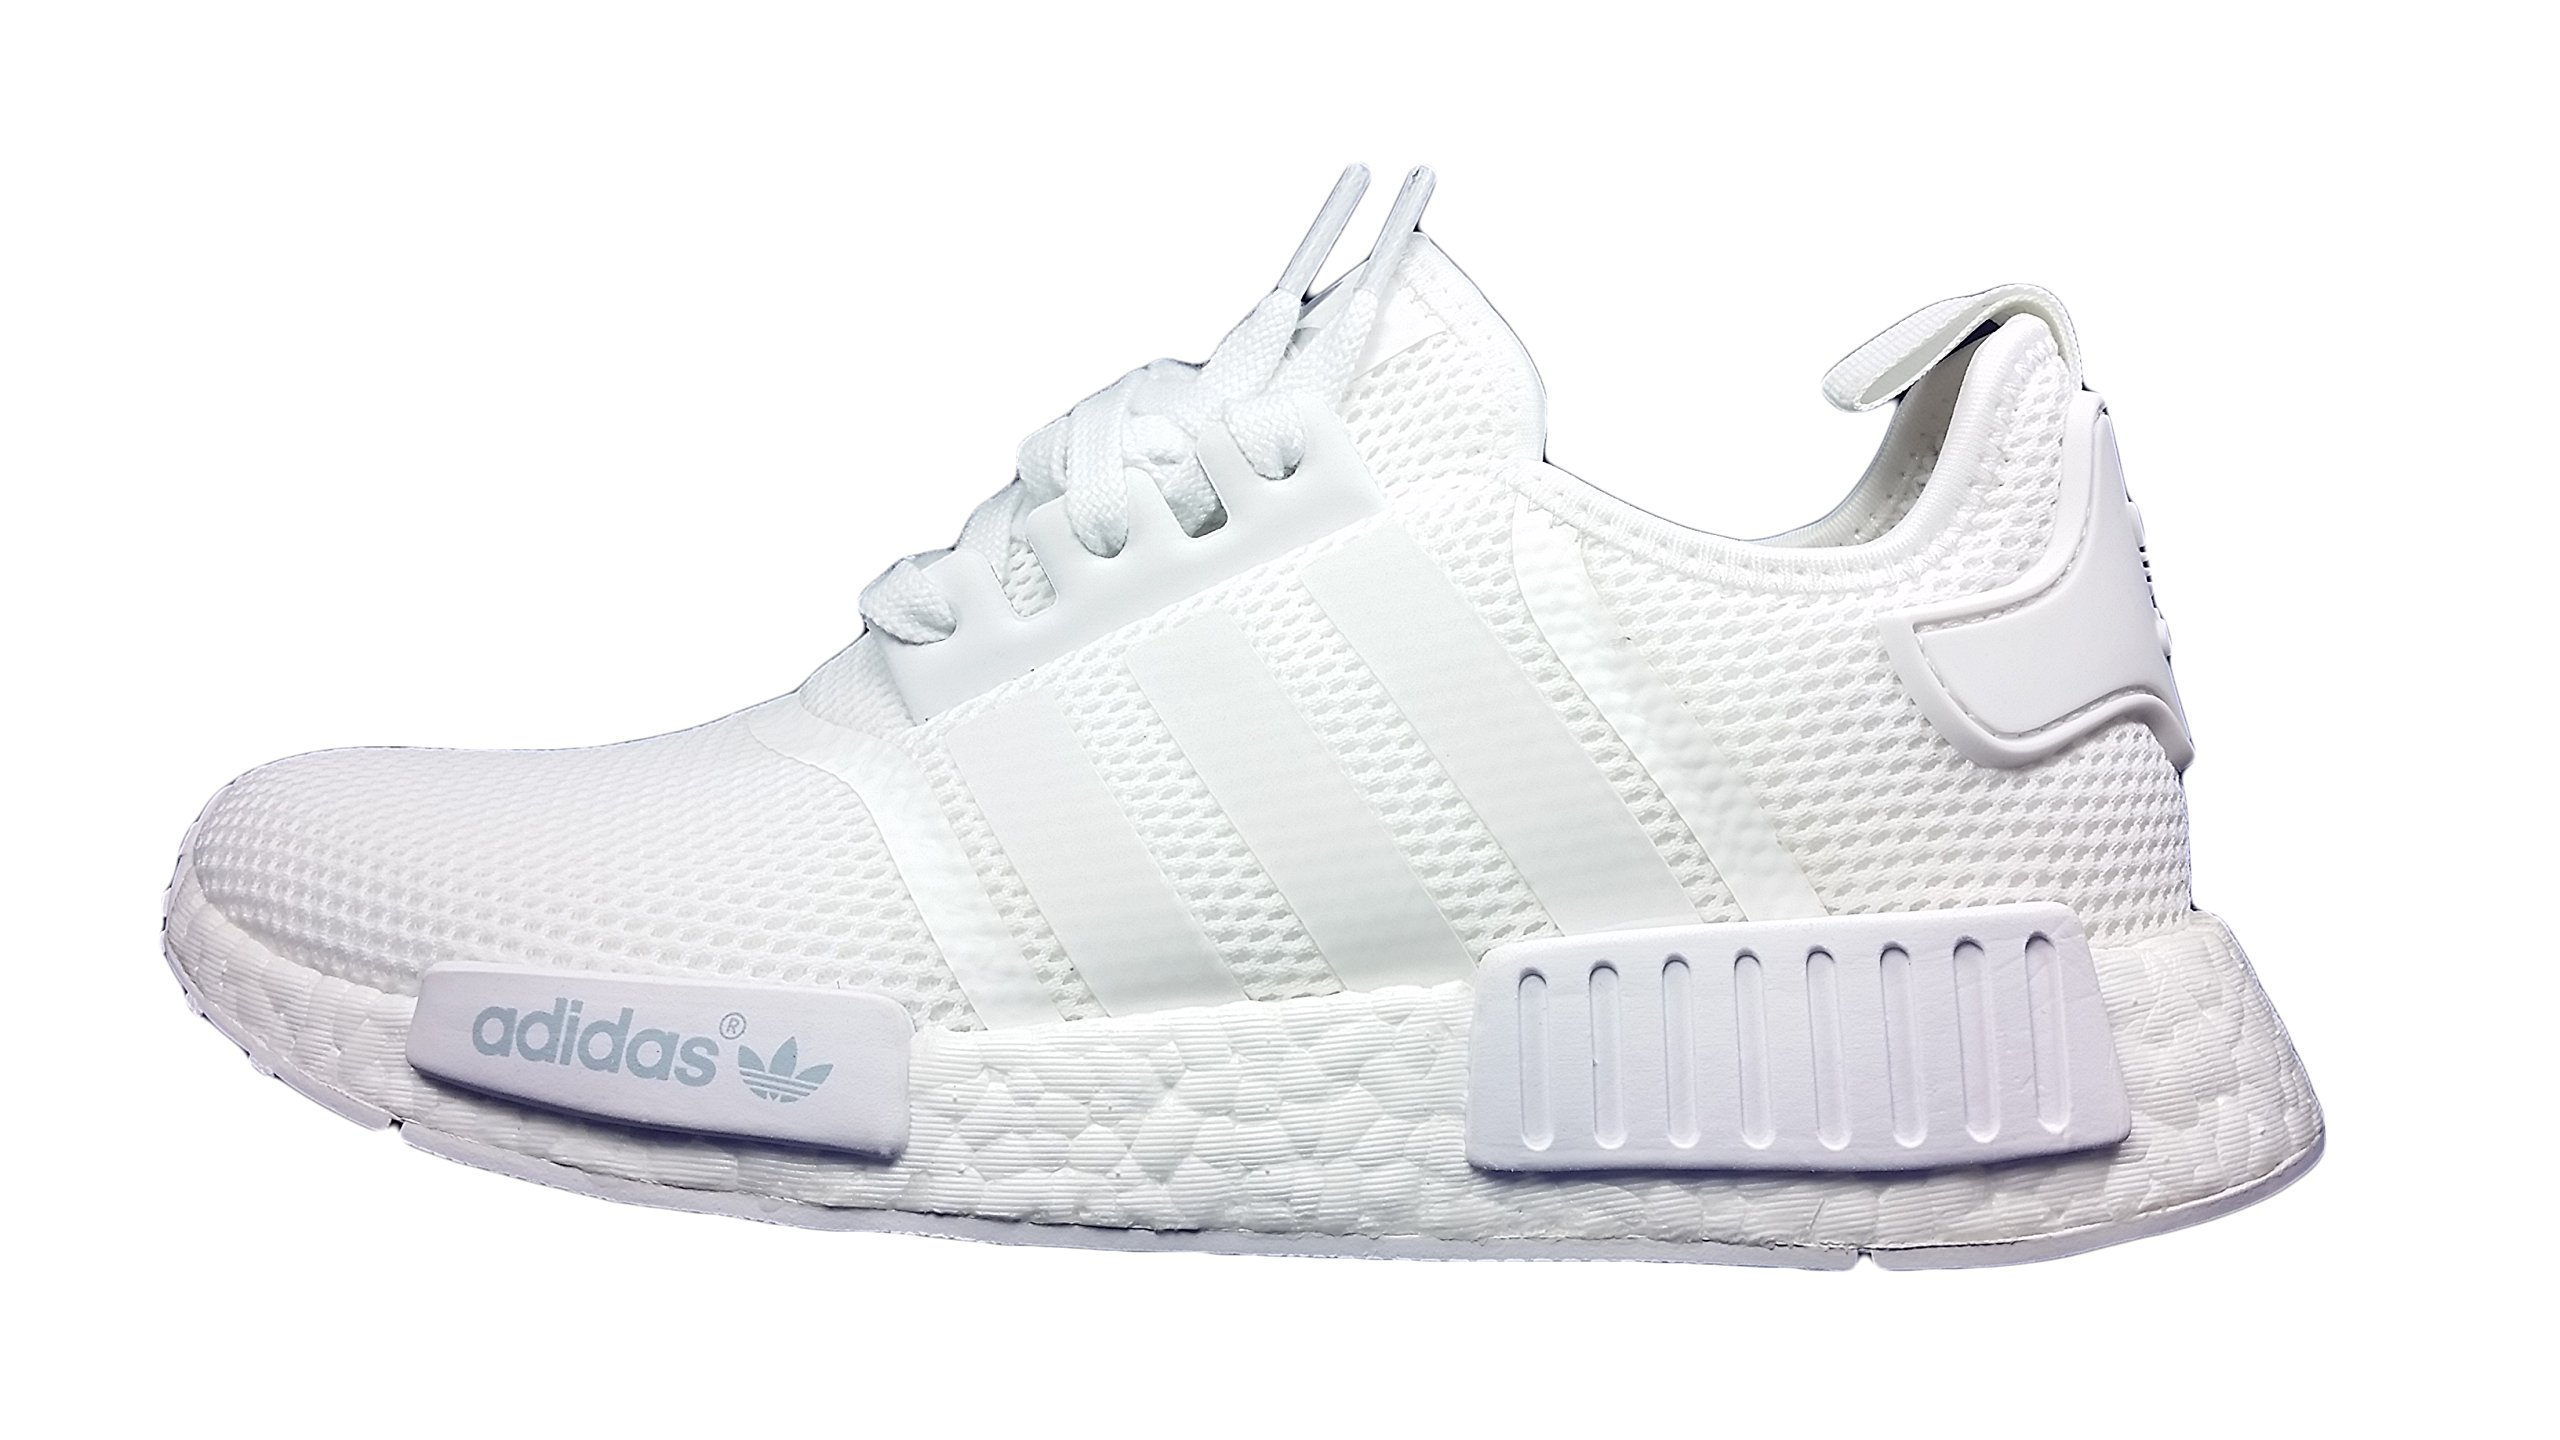 uk availability 8d038 92e59 adidas Men's NMD Runner Casual Shoes NMD_R1 Running Shoes (White) (11)